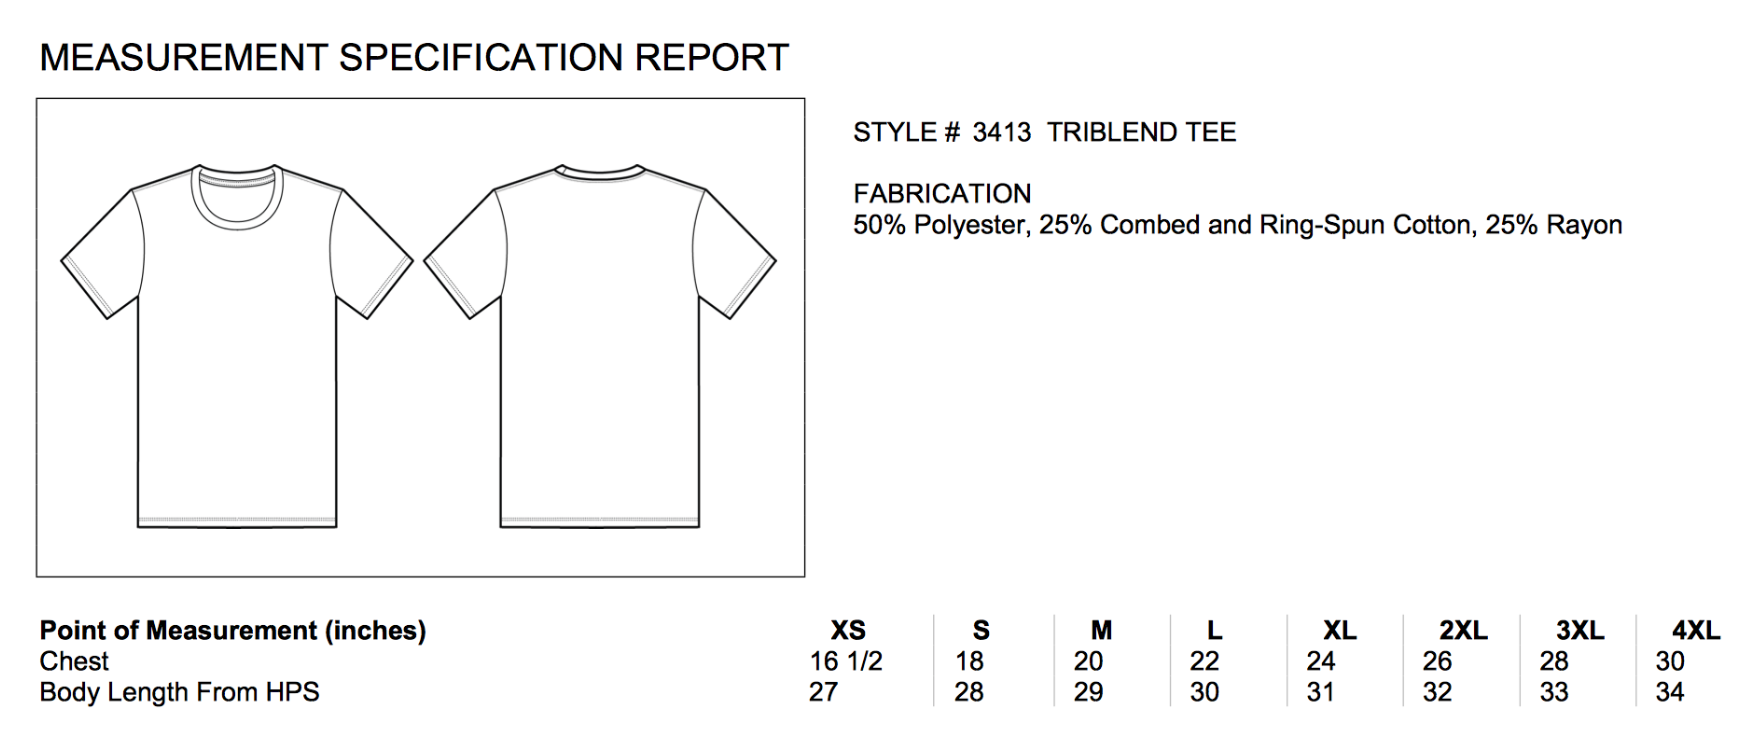 Size chart for triblend tee shirts